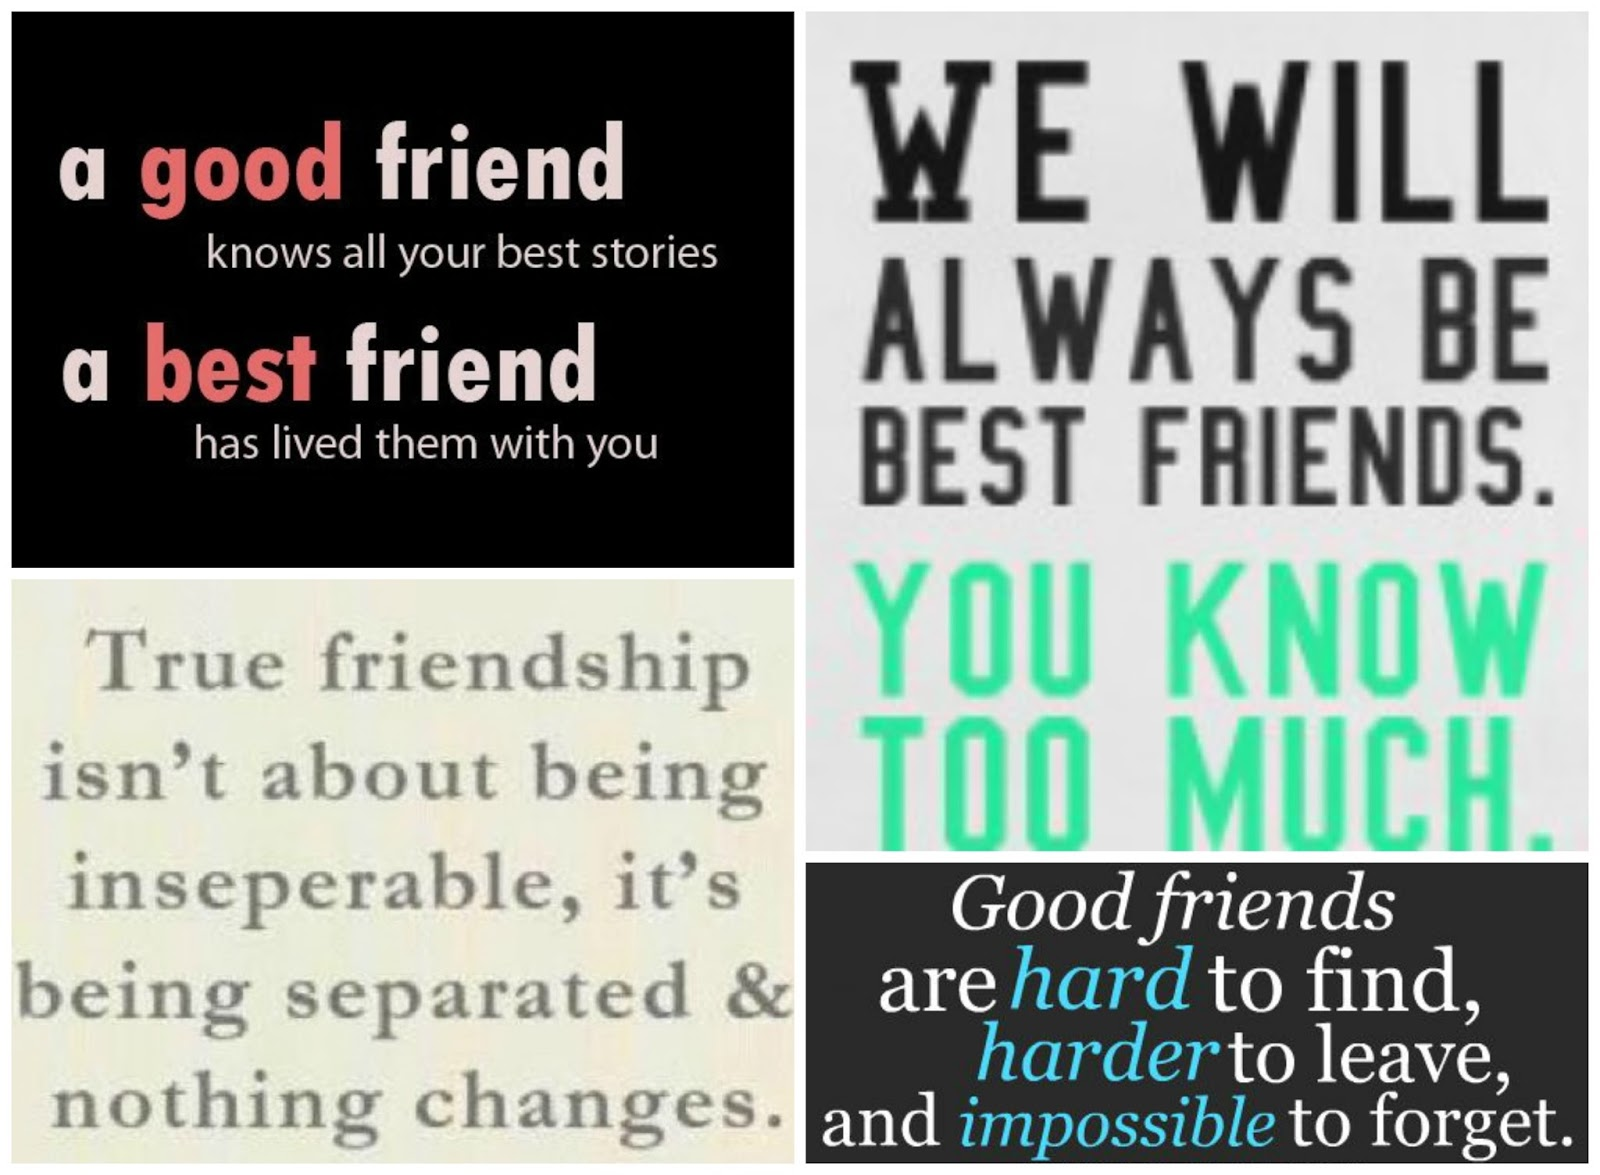 After All, Like The Quote Says Below, We All Know Too Much About Each Other  So We Better Stay Friends! Ha!